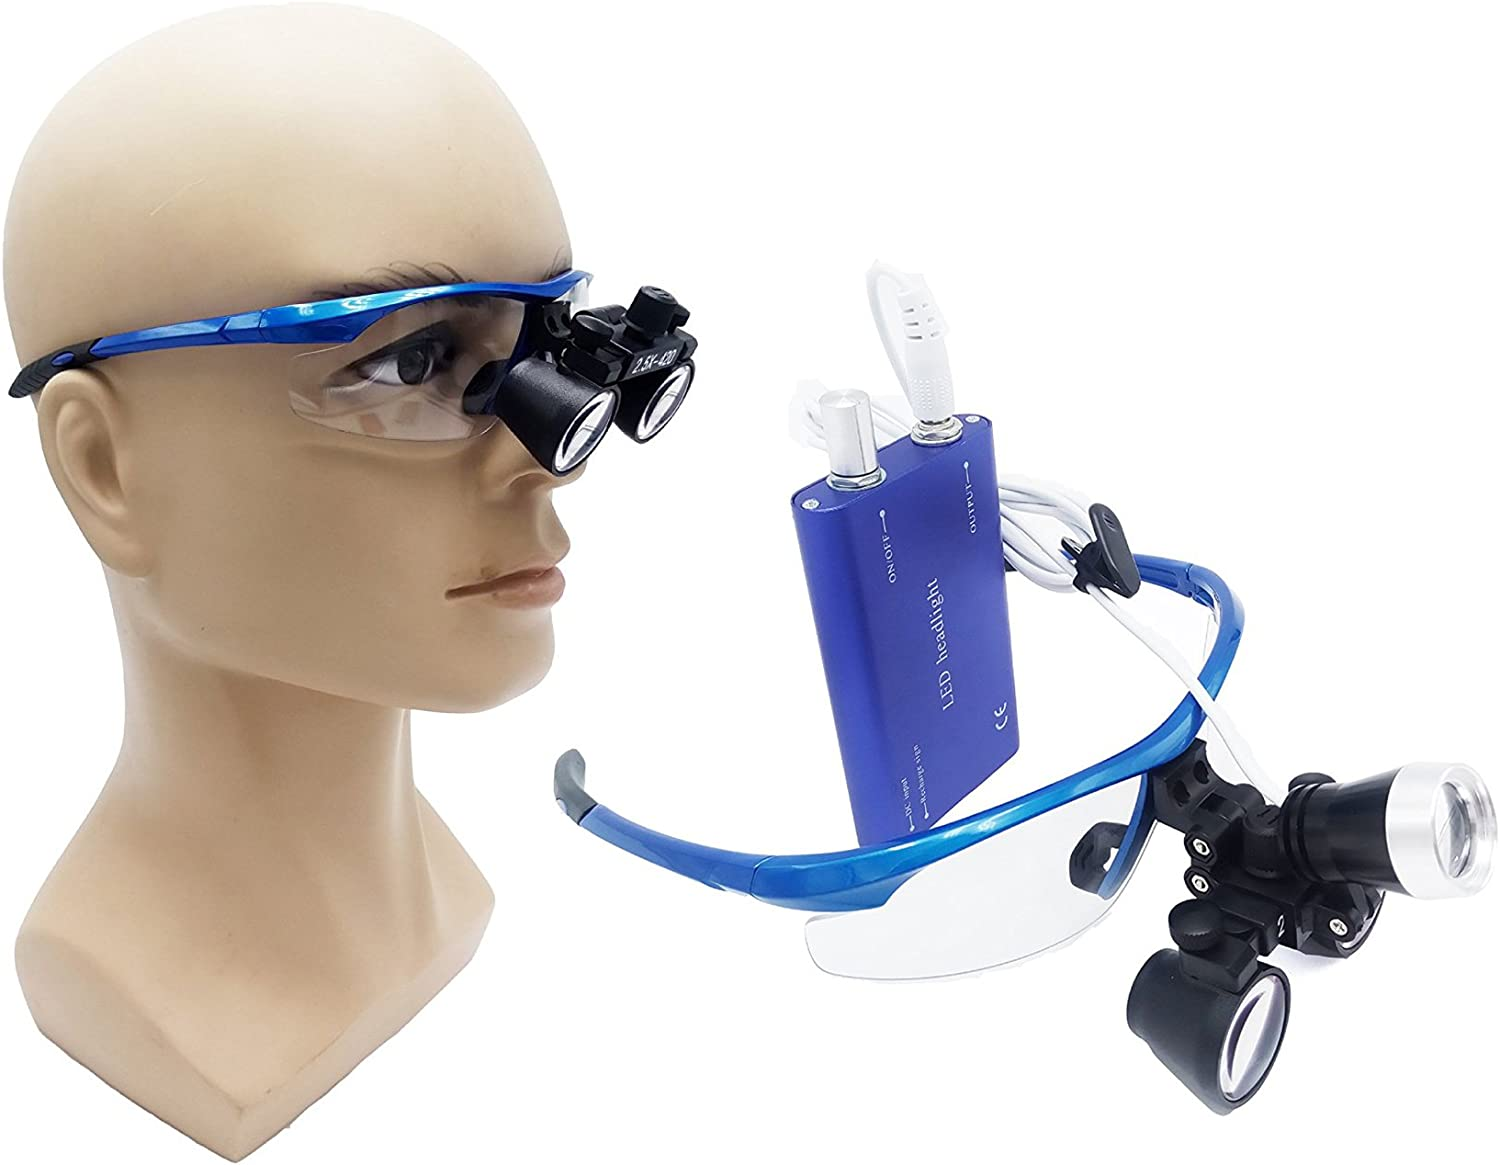 Sale discount price Zgood Portable Surgical Binocular Glass Optical Loupes 2.5X420mm